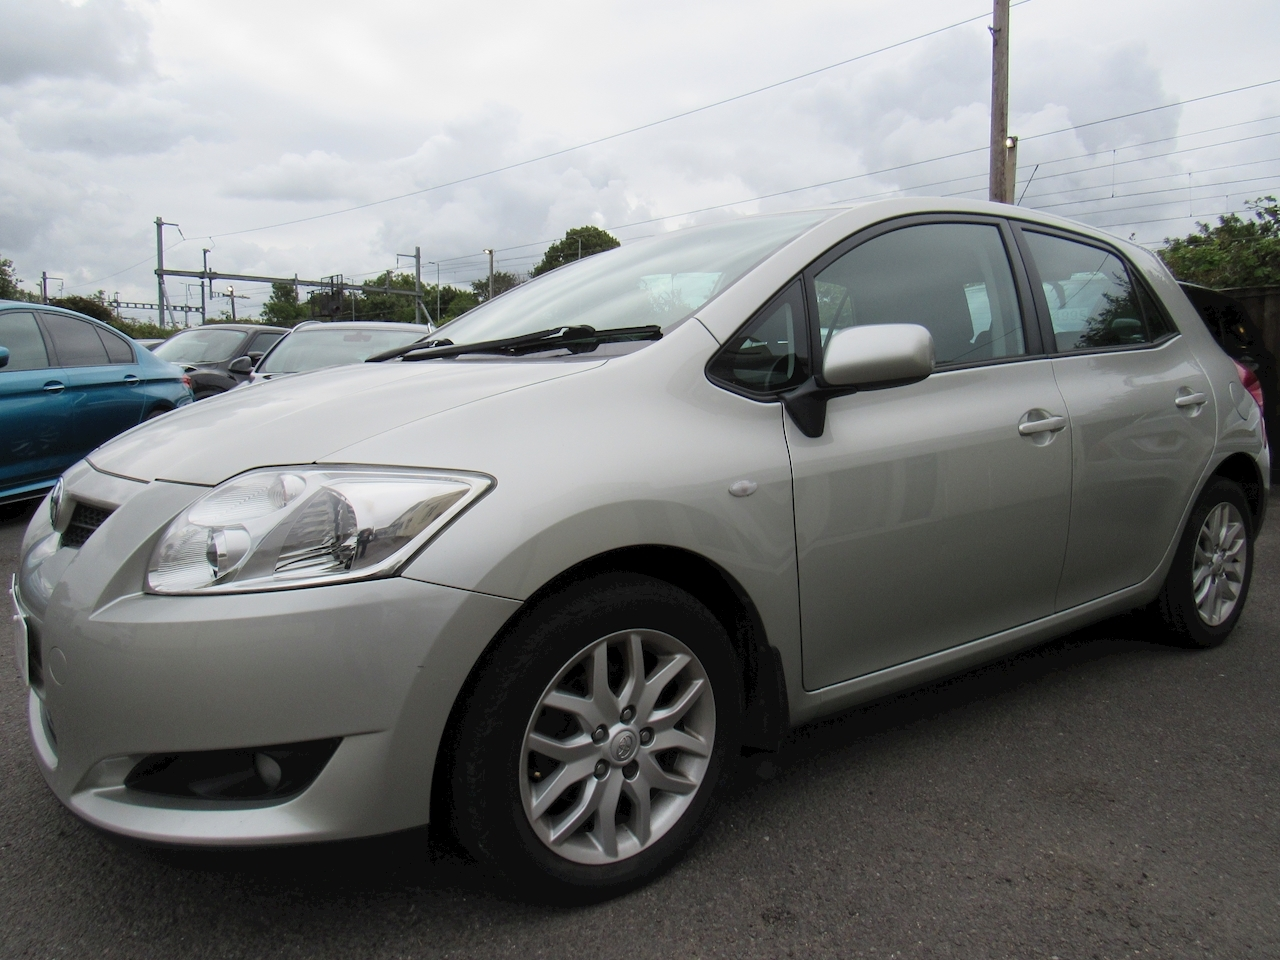 Toyota Auris Tr Vvt-I Hatchback 1.6 Manual Petrol